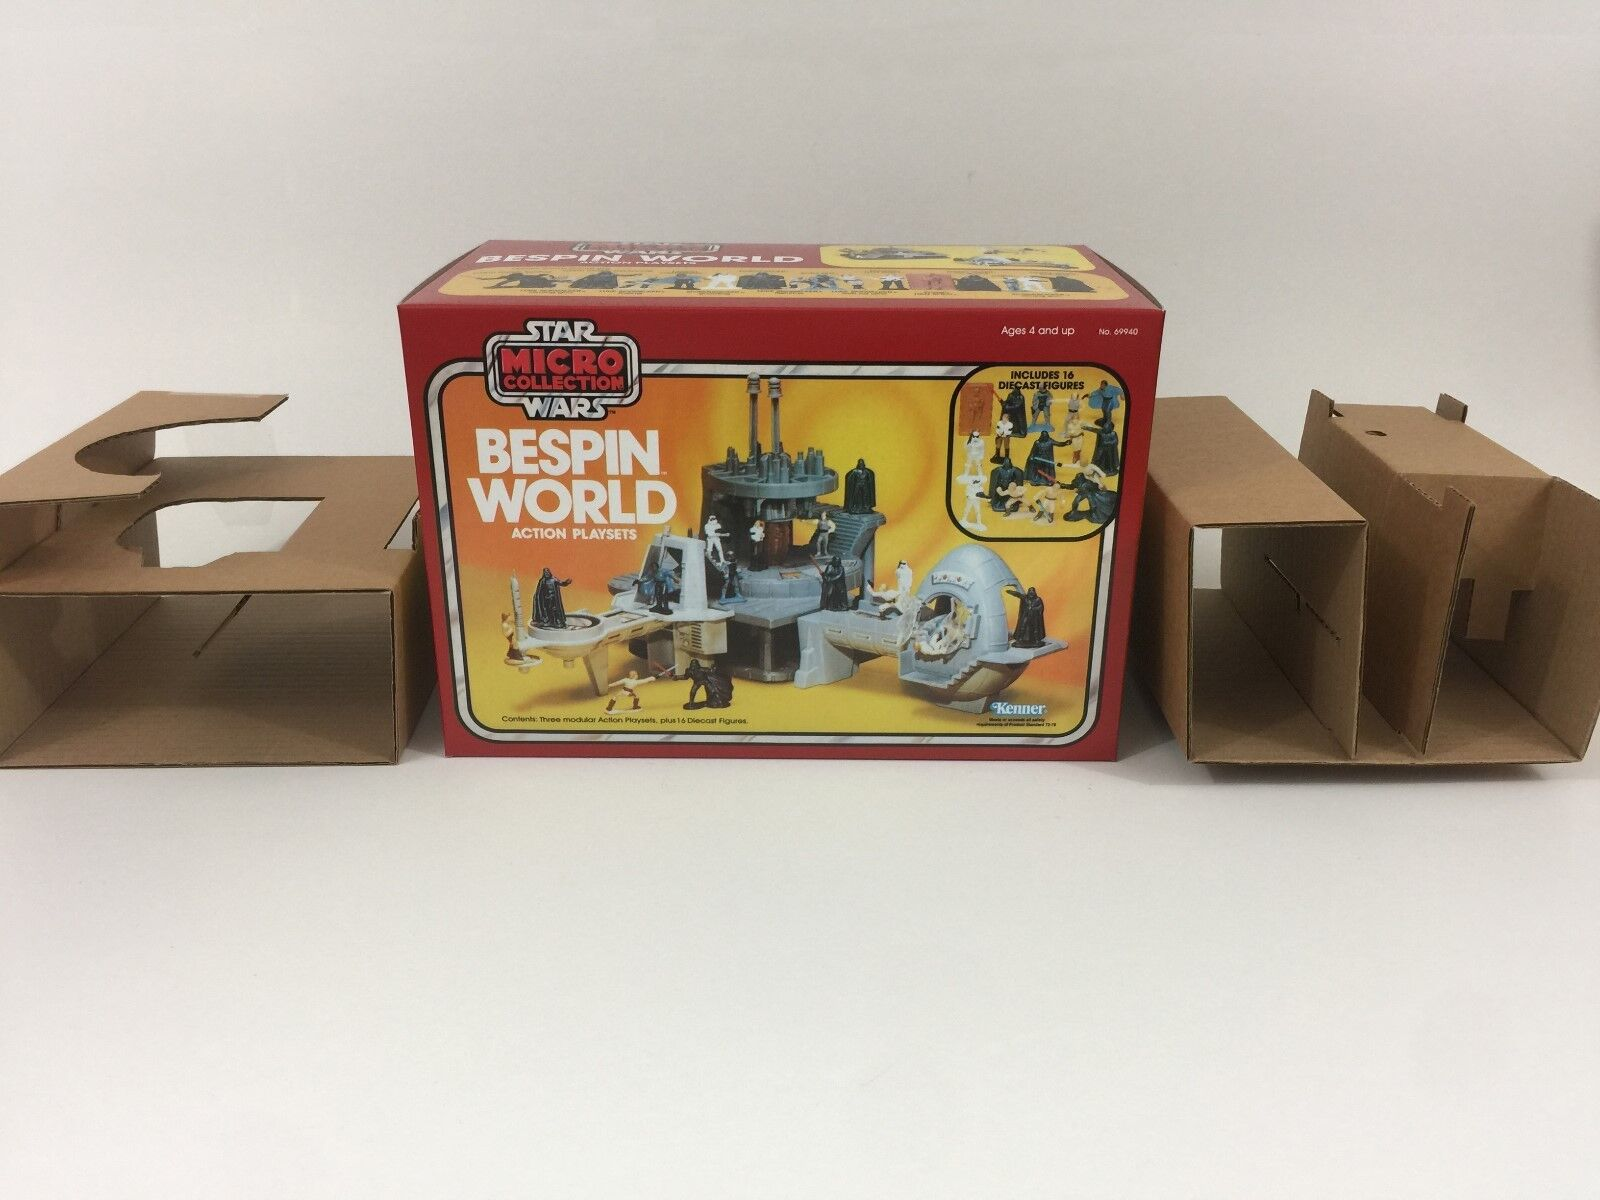 Replacement vintage star wars micro collection bespin world box + inserts